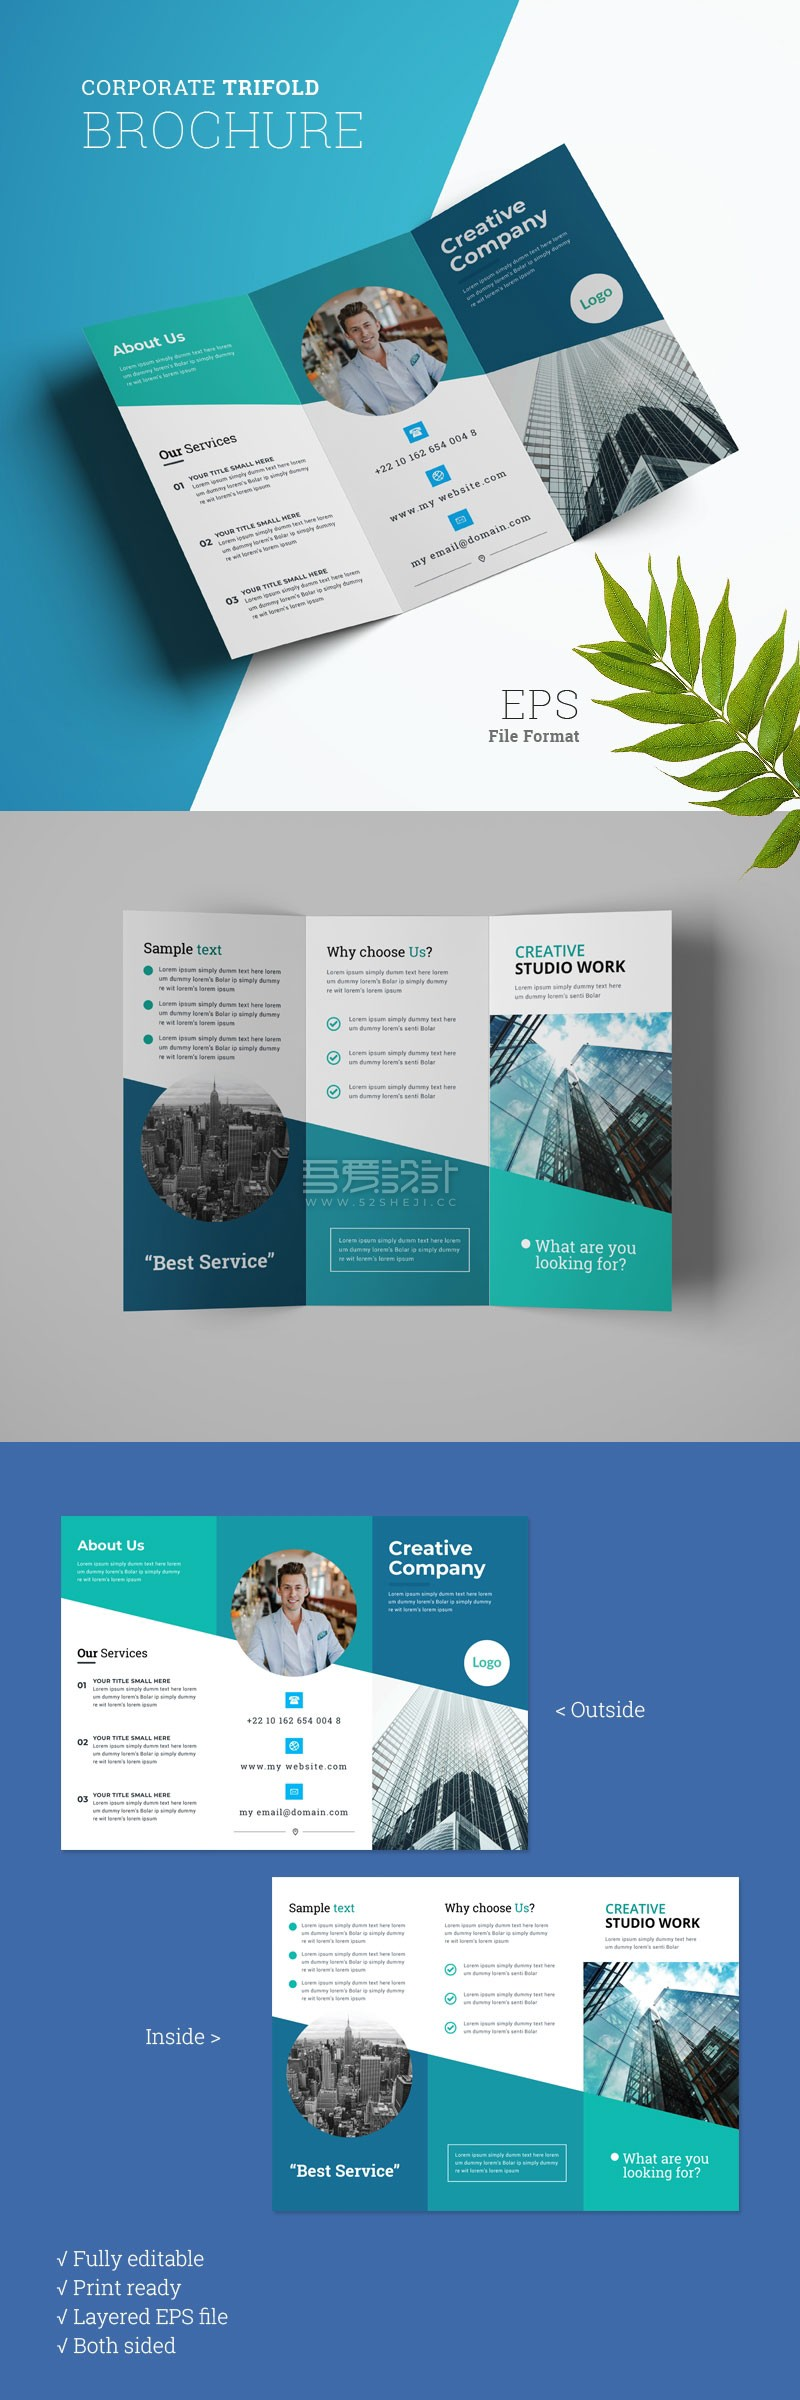 corporate-trifold-brochure-template-1356231-preview